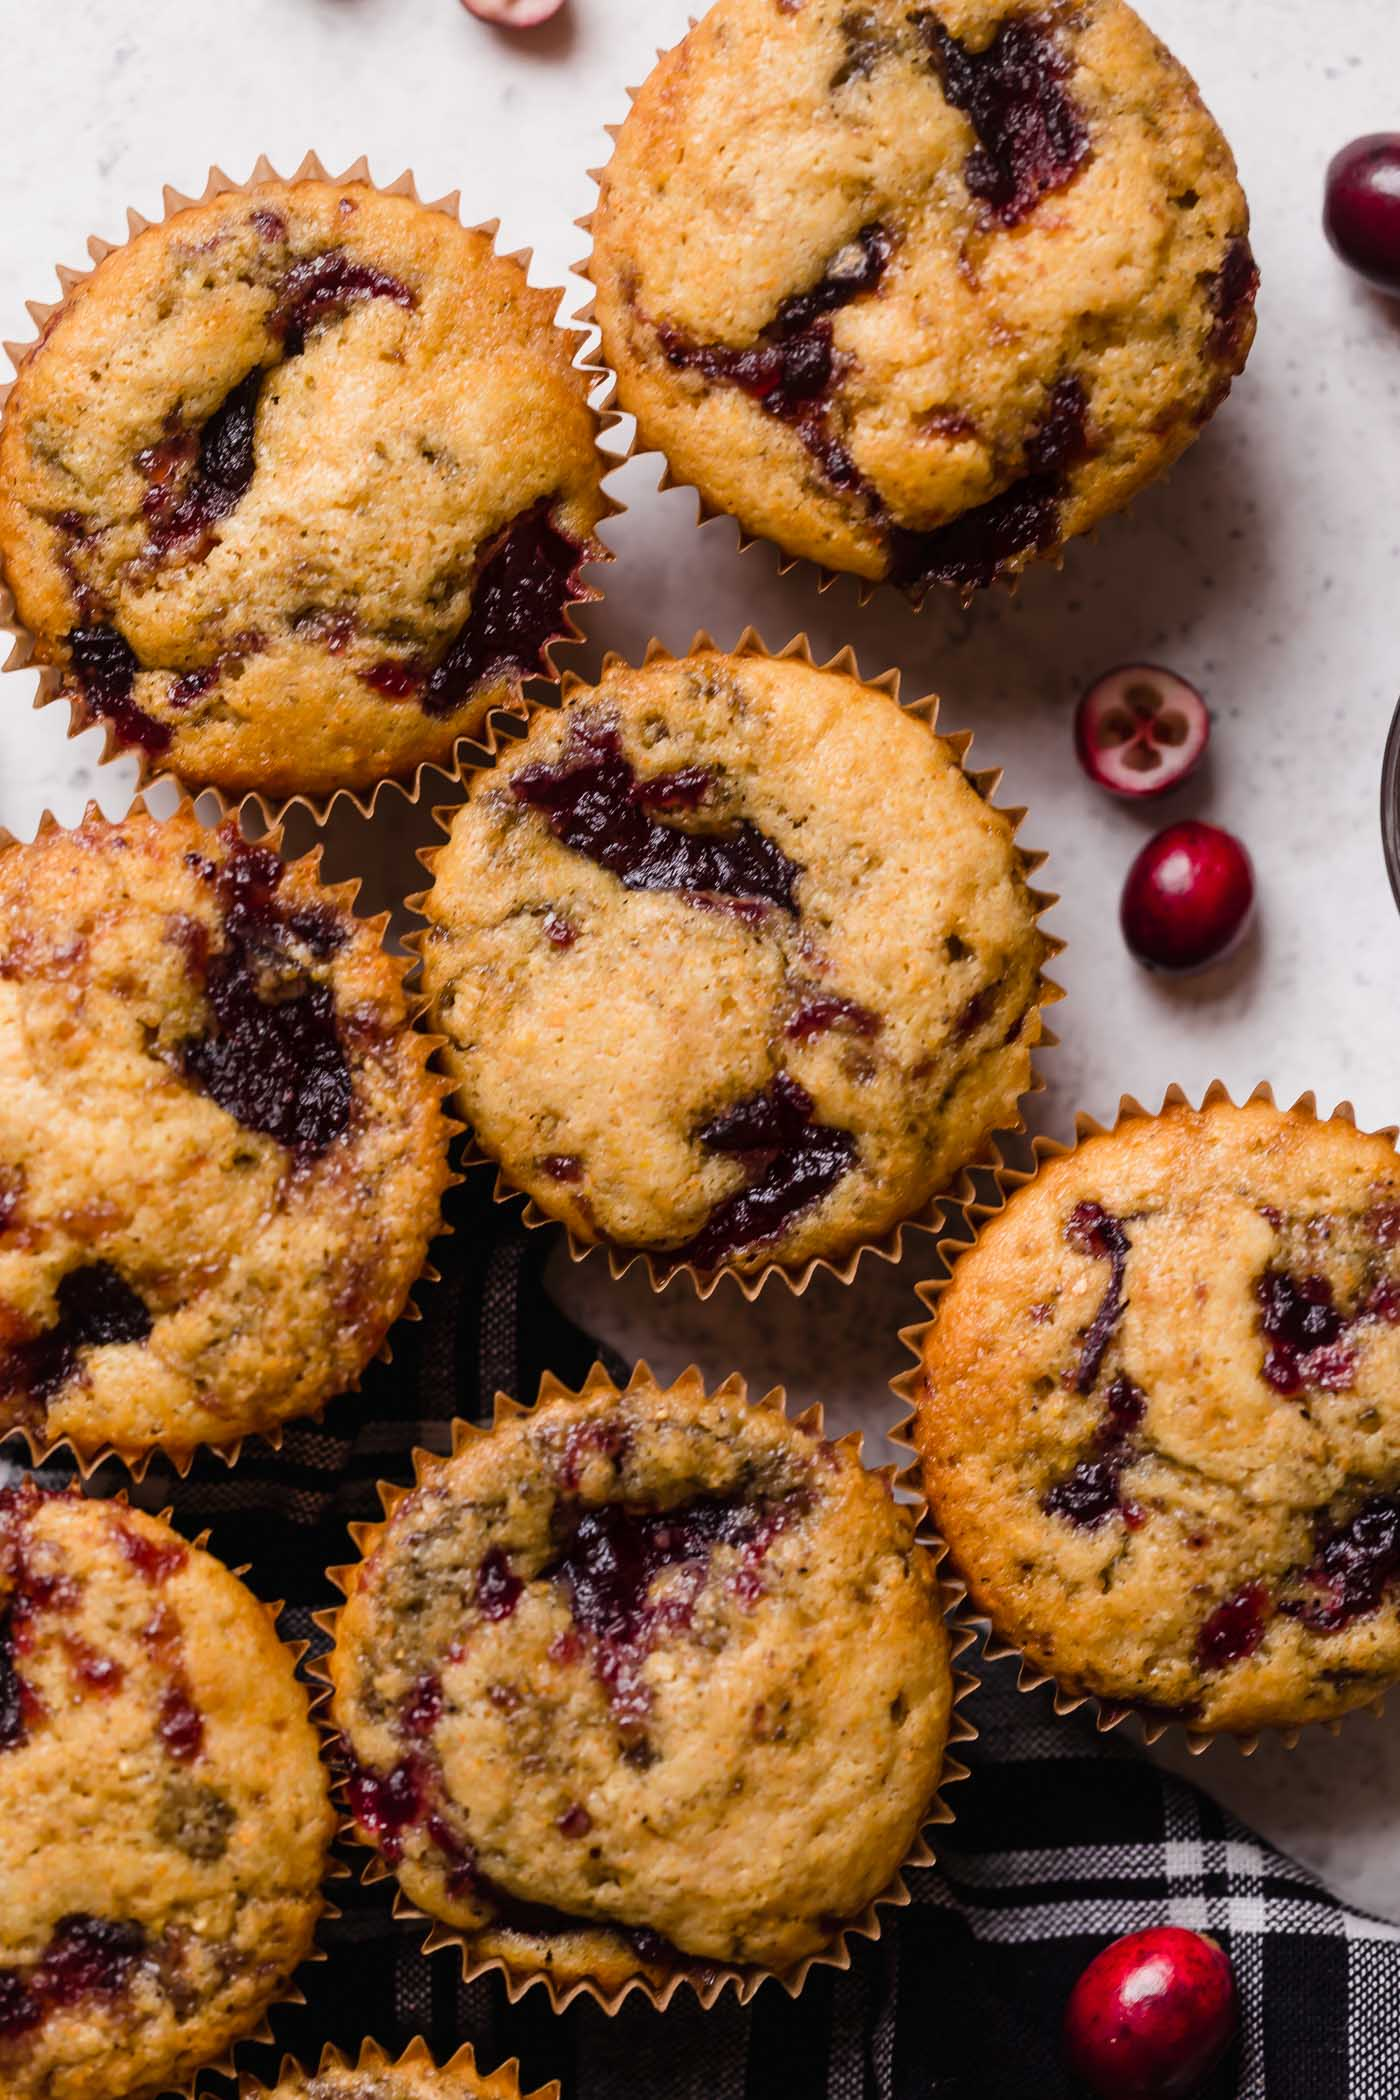 swirled cranberry cornbread muffins. these cranberry cornbread muffins have cranberry sauce swirled throughout them, making them a gorgeously festive for the holiday season! move over parker house rolls, these cranberry cornbread muffins will earn a permanent spot on your thanksgiving & friendsgiving menus from here on out! #playswellwithbutter #cranberrycornbread #cornbread #cornbreadmuffins #thanksgivingsidedish #friendsgiving #thanksgivingsides #easythanksgivingsides